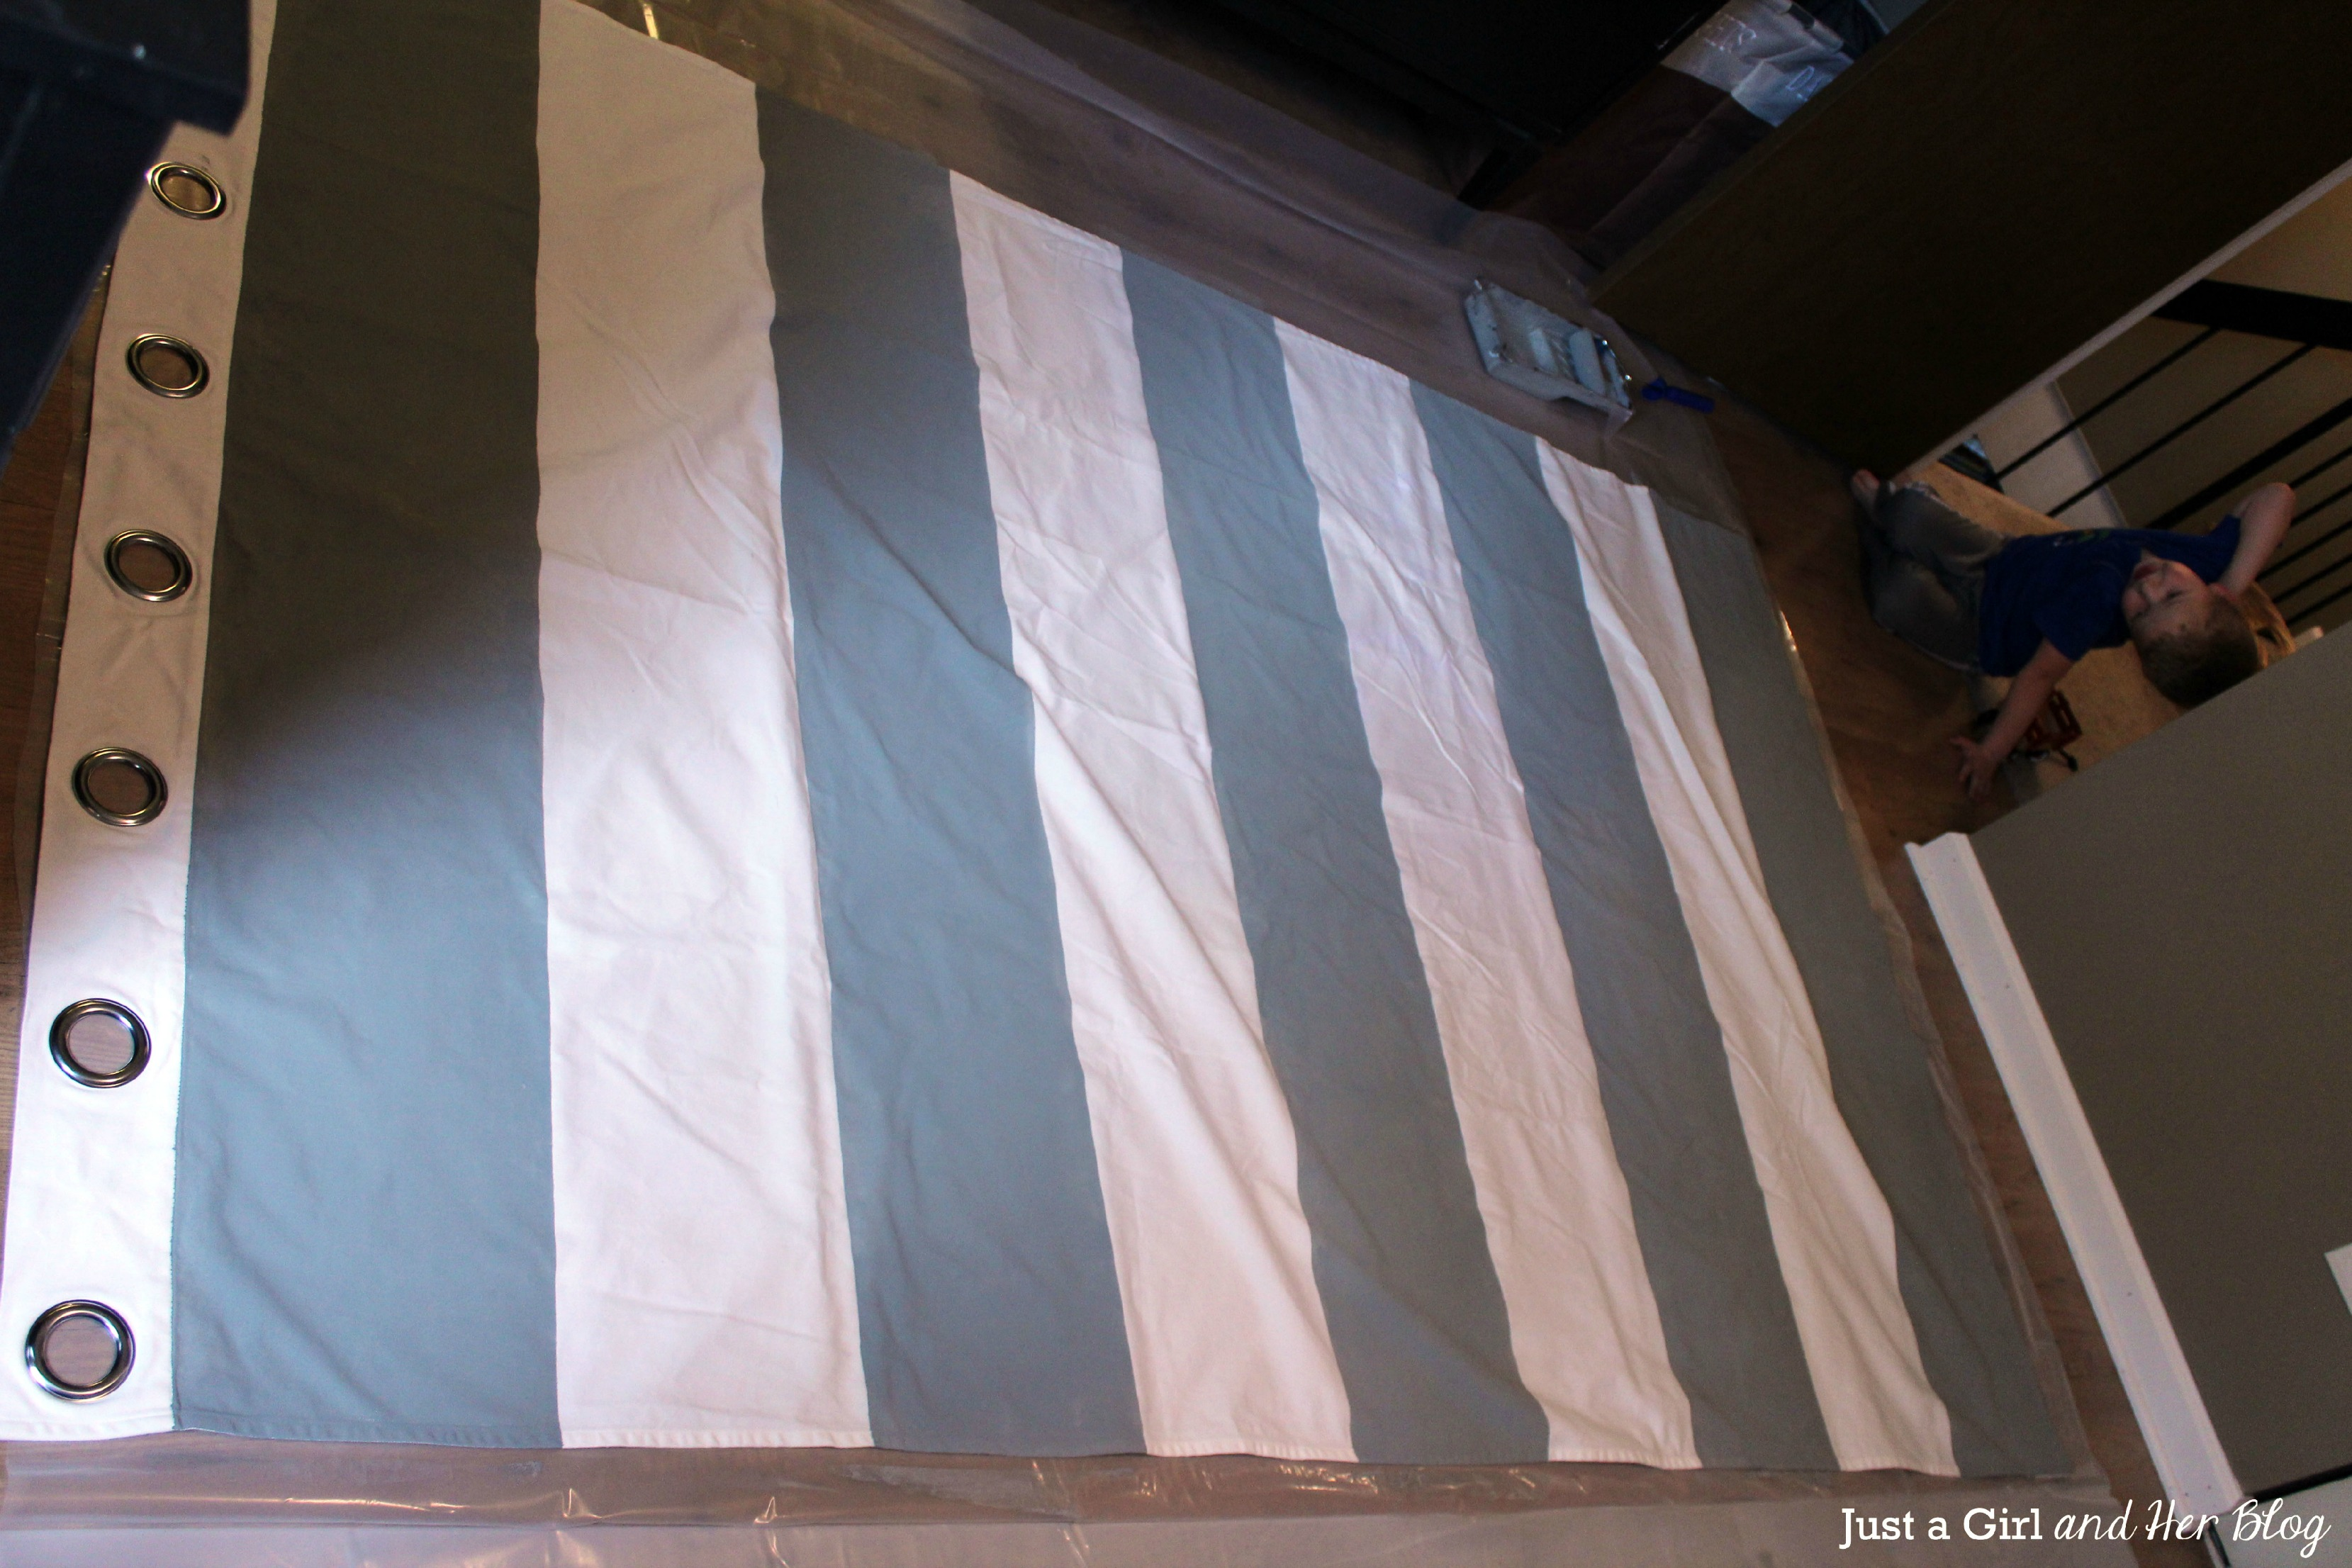 painted horizontal striped curtains on the floor